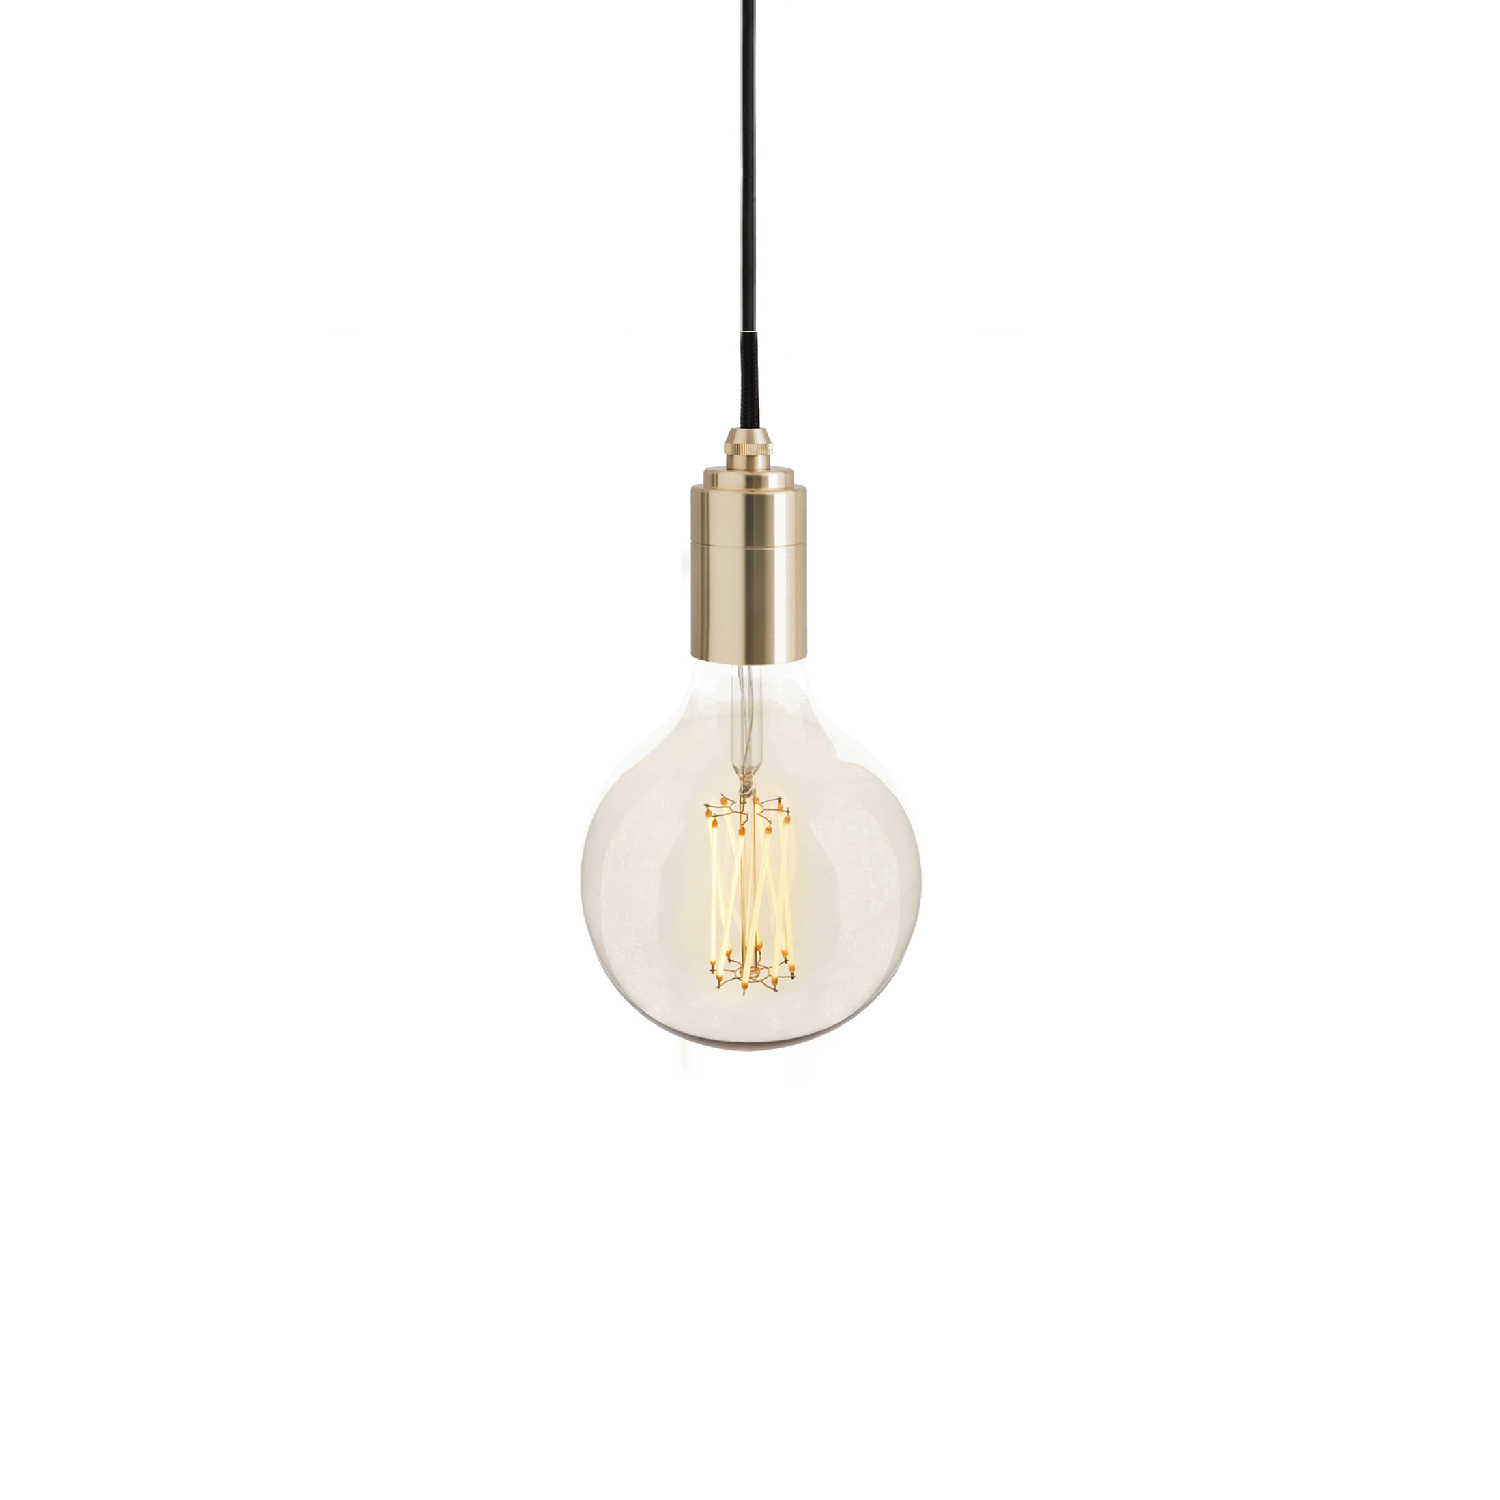 Gaia Pendant Light - The Gaia Pendant Light combines the popular, exposed-filament style of the Gaia bulb with a single hanging pendant to create a ready-made light fixture for any interior space.  Stylish and modern, the Gaia Pendant Light is perfect for hanging in the centre of a room or hallway, above an island or as a decorative feature. The phosphor coated filaments and iron-tinted glass create a warm, amber glow to add atmosphere to any space.  Available with the Brass, Graphite, Oak or Walnut pendant.  Connect to one of our recommended dimmers for maximum performance.  Features – Dimmable – Stylish lighting fixture – Energy-efficient, LED technology – Exposed filament bulb design – Available with a Brass, Graphite, Oak or Walnut pendant – 3 metre length cord for versatility | Matter of Stuff